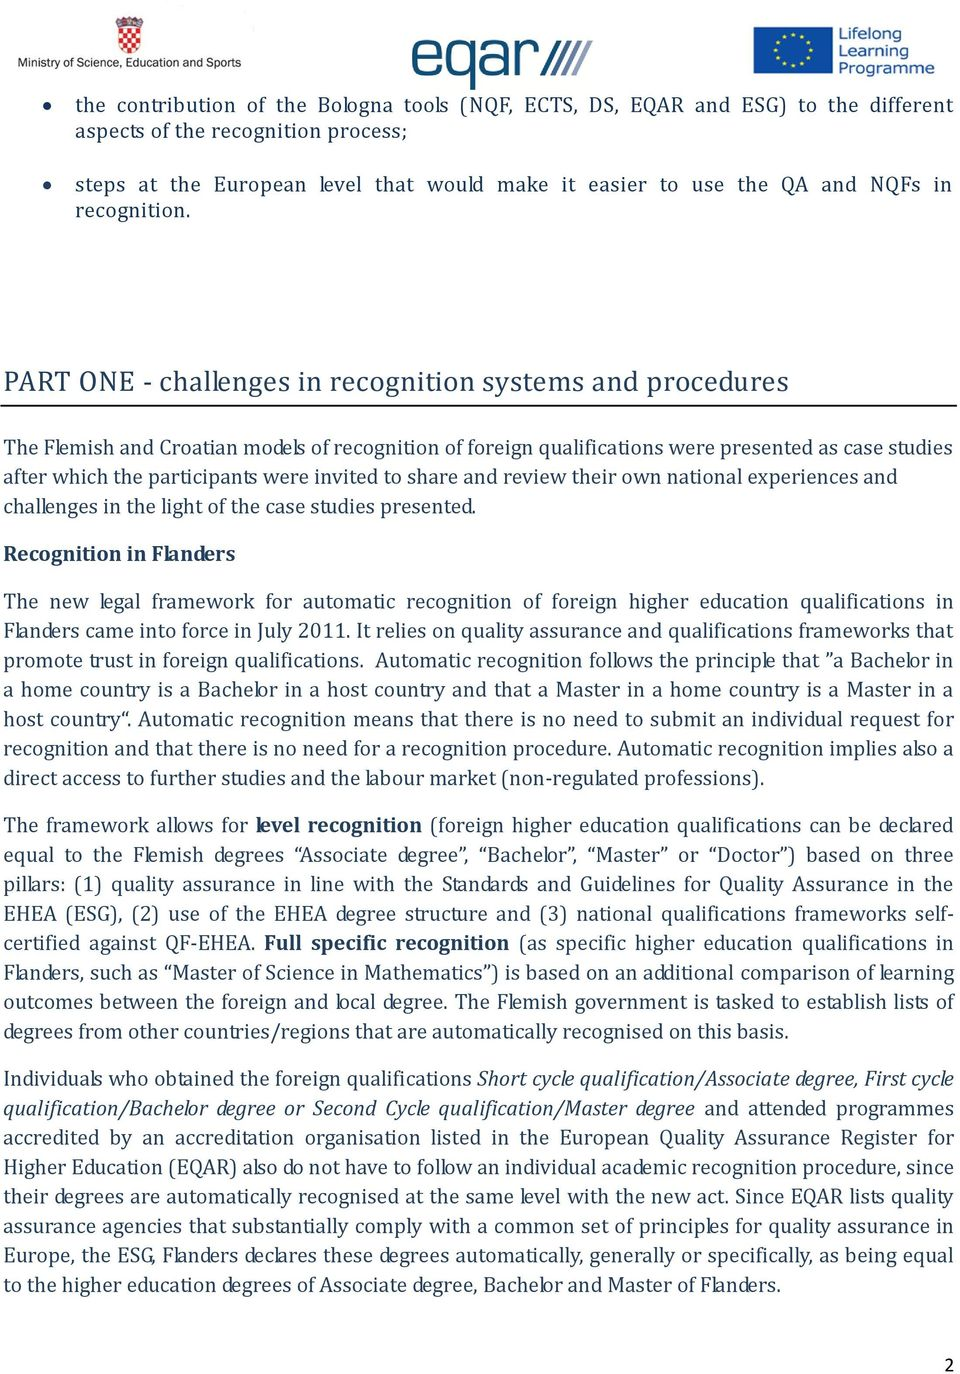 PART ONE - challenges in recognition systems and procedures The Flemish and Croatian models of recognition of foreign qualifications were presented as case studies after which the participants were